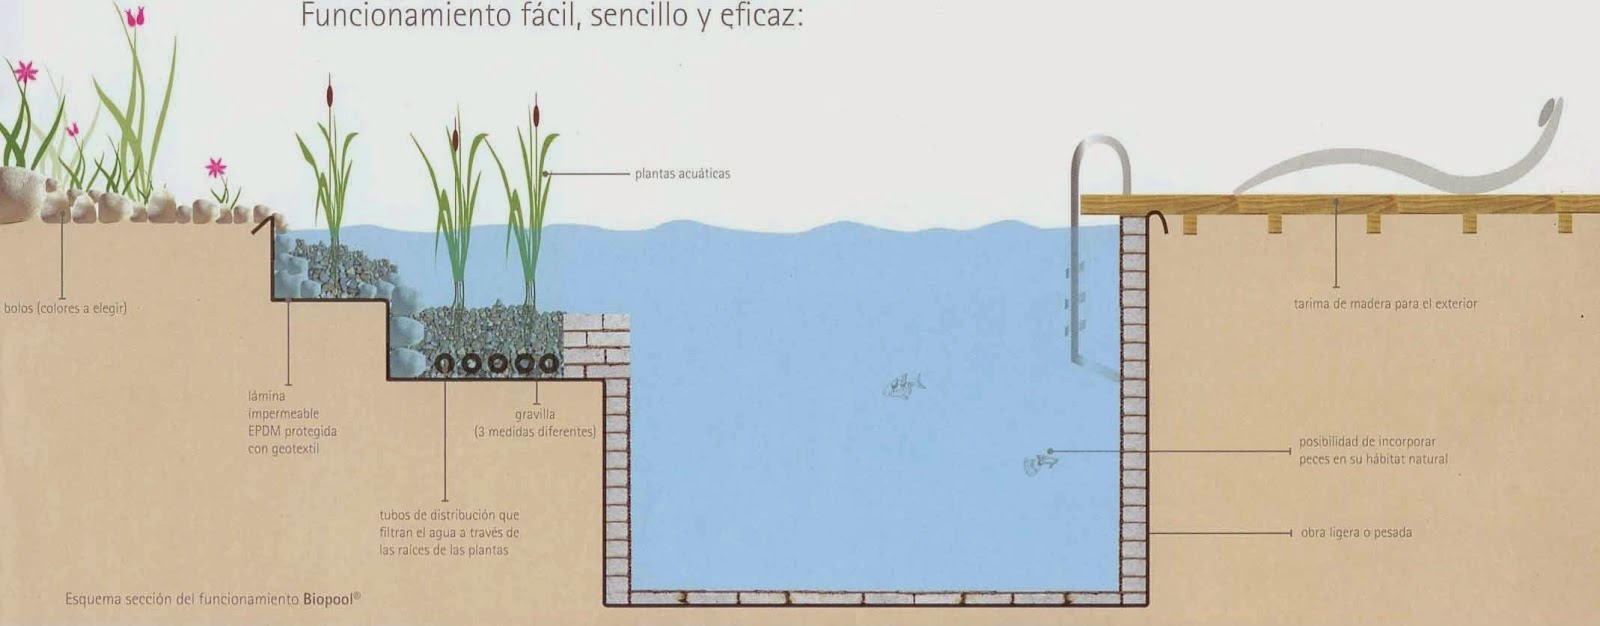 Te invito a leer piscinas naturales for Como construir una piscina natural ecologica